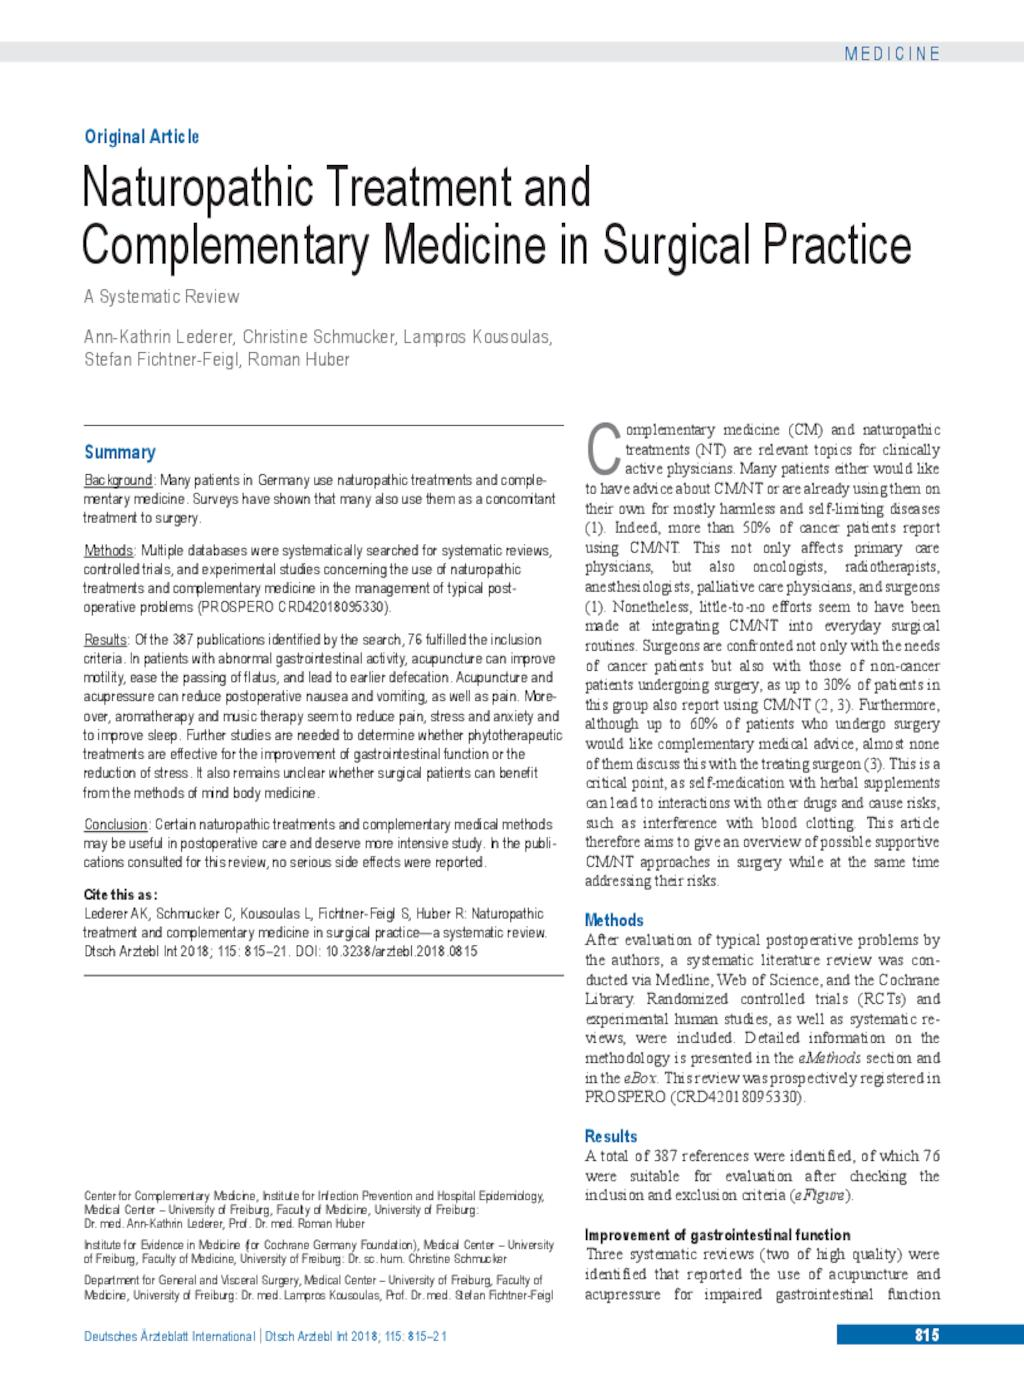 Naturopathic Treatment and Complementary Medicine in